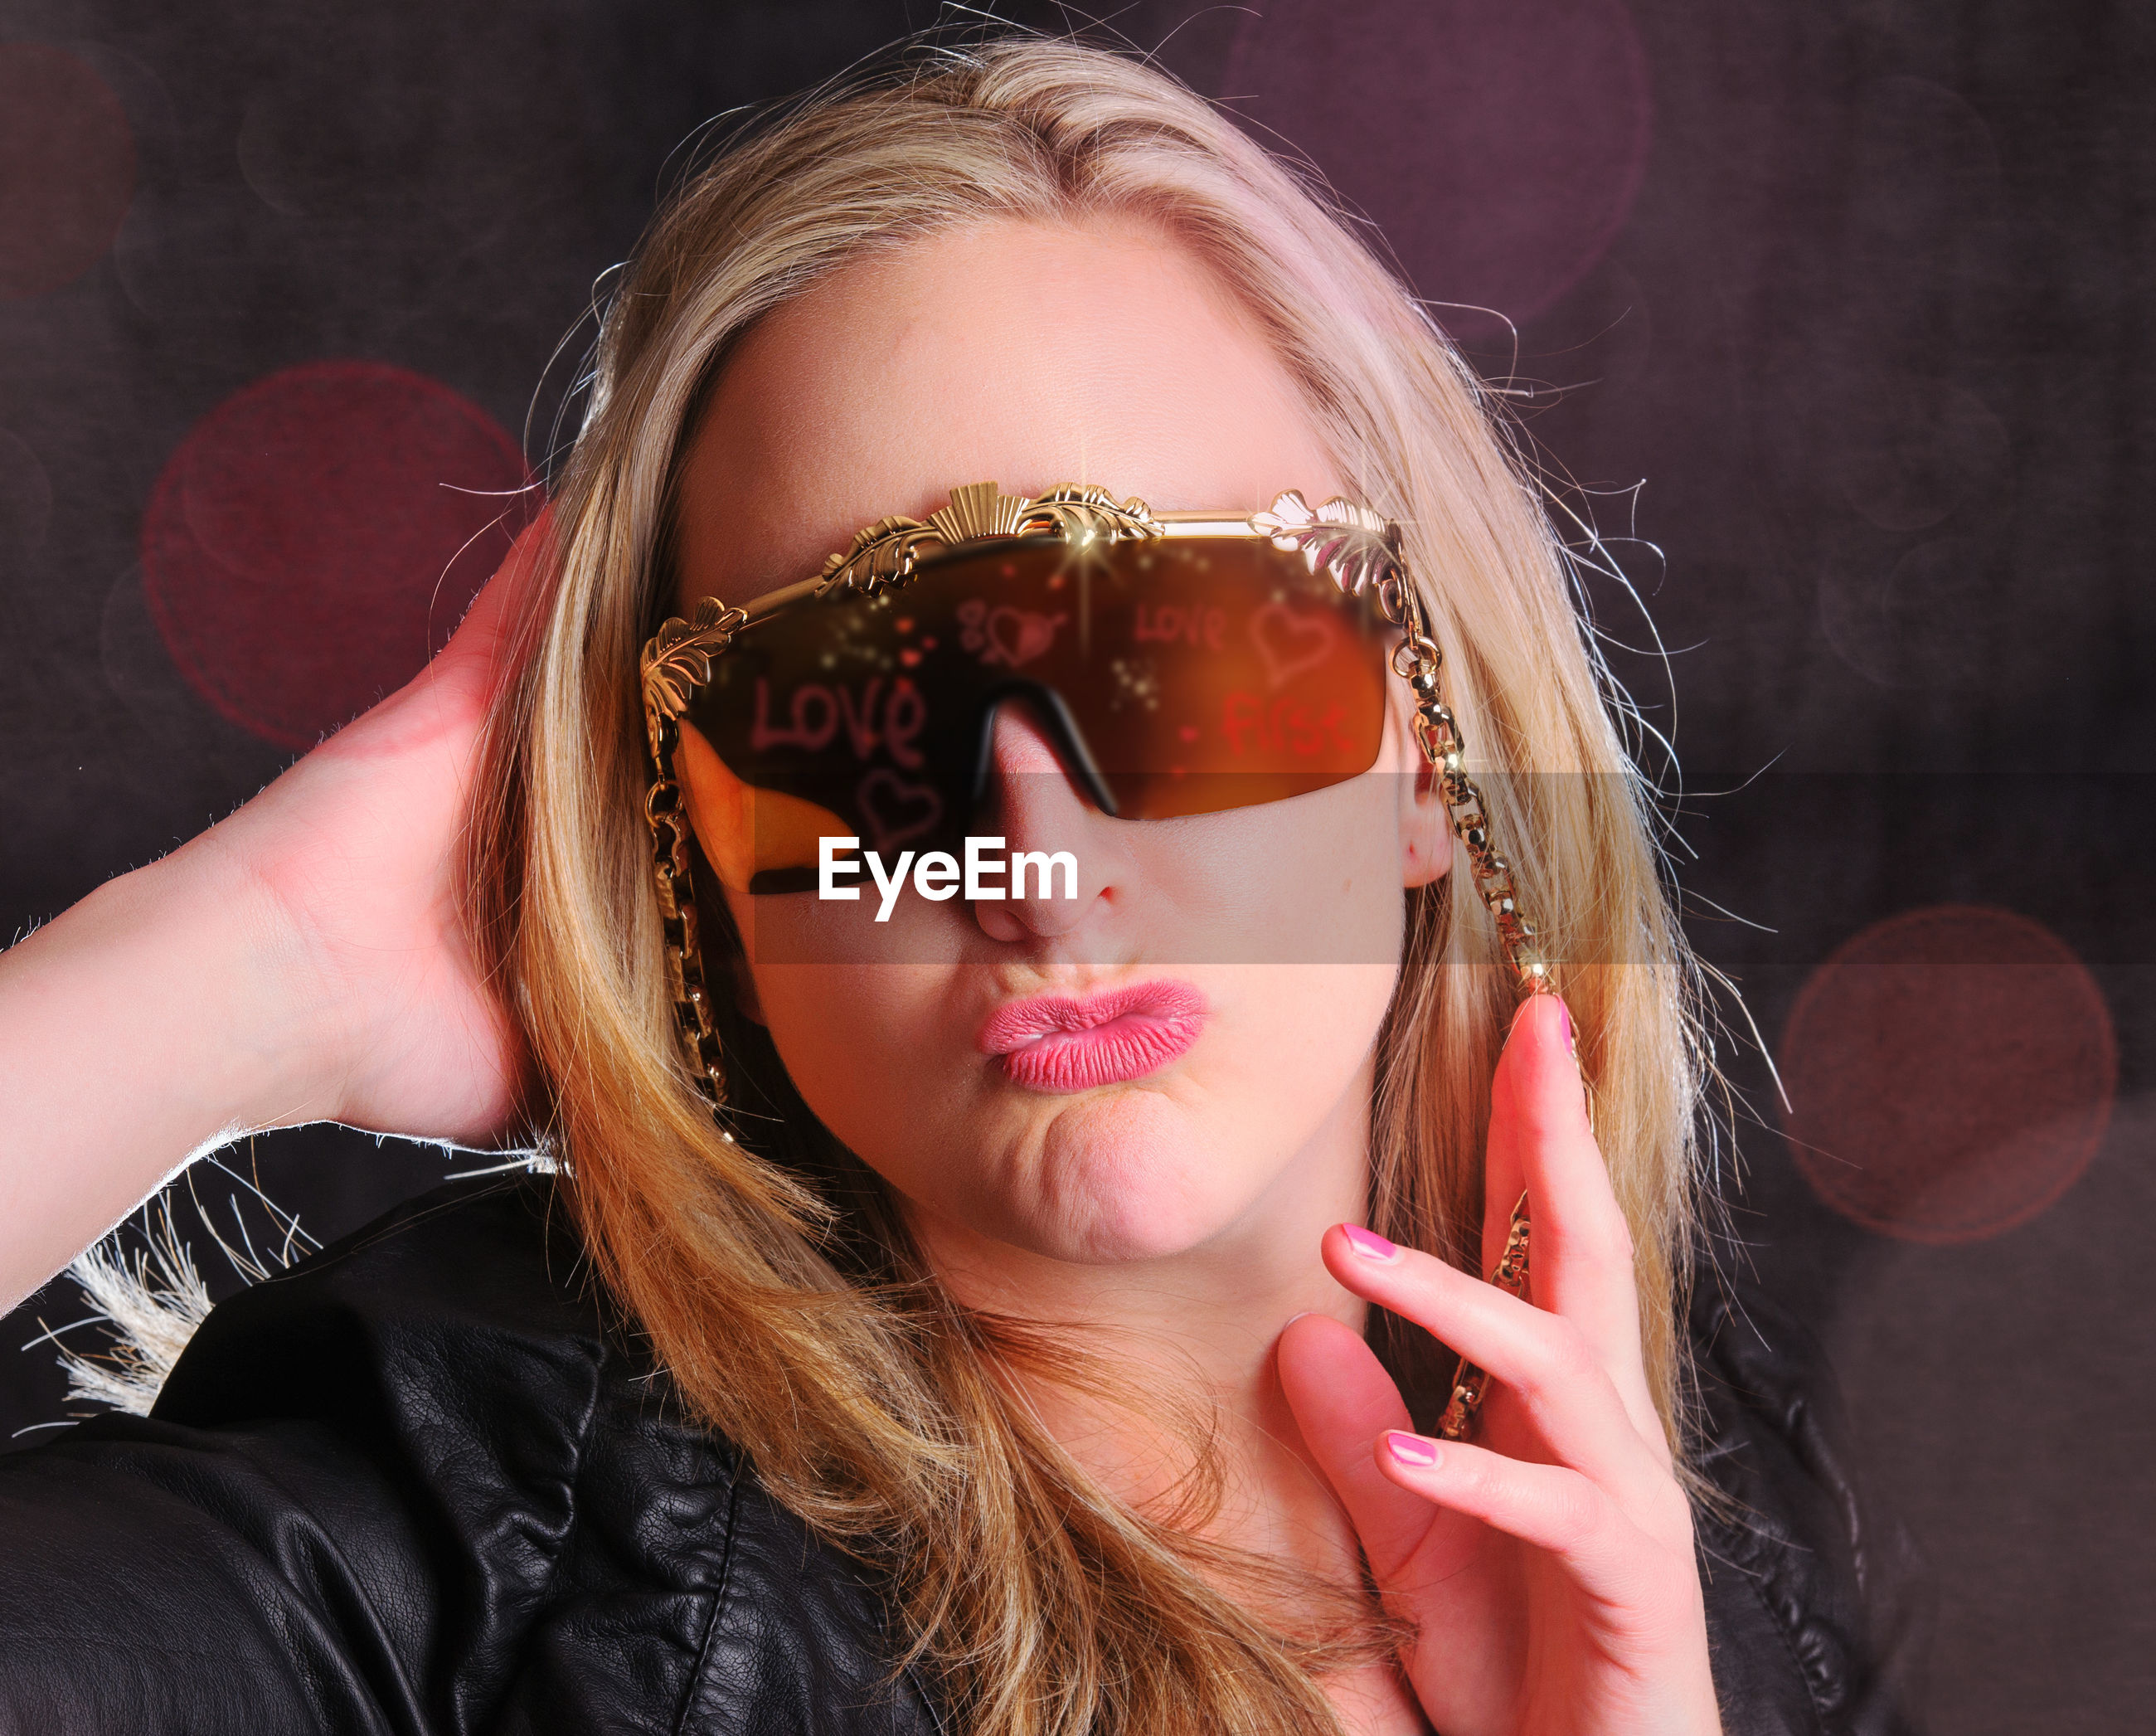 Portrait of fashionable woman wearing sunglasses while puckering